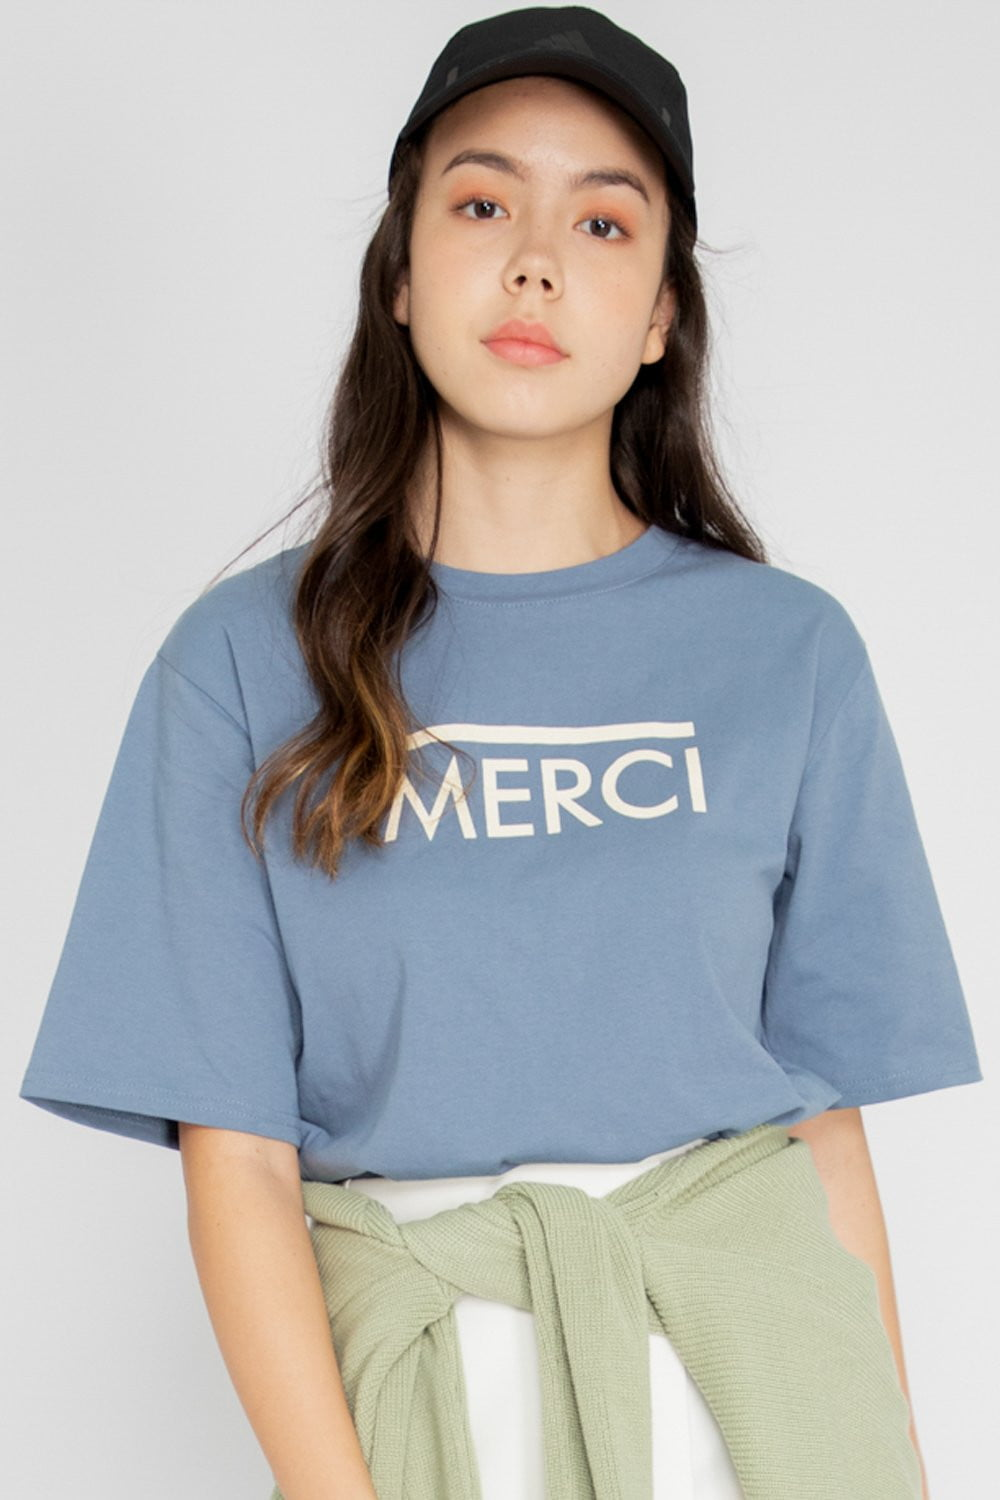 *Restocked* Merci Graphic Tee in Slate Blue - Three One Duo